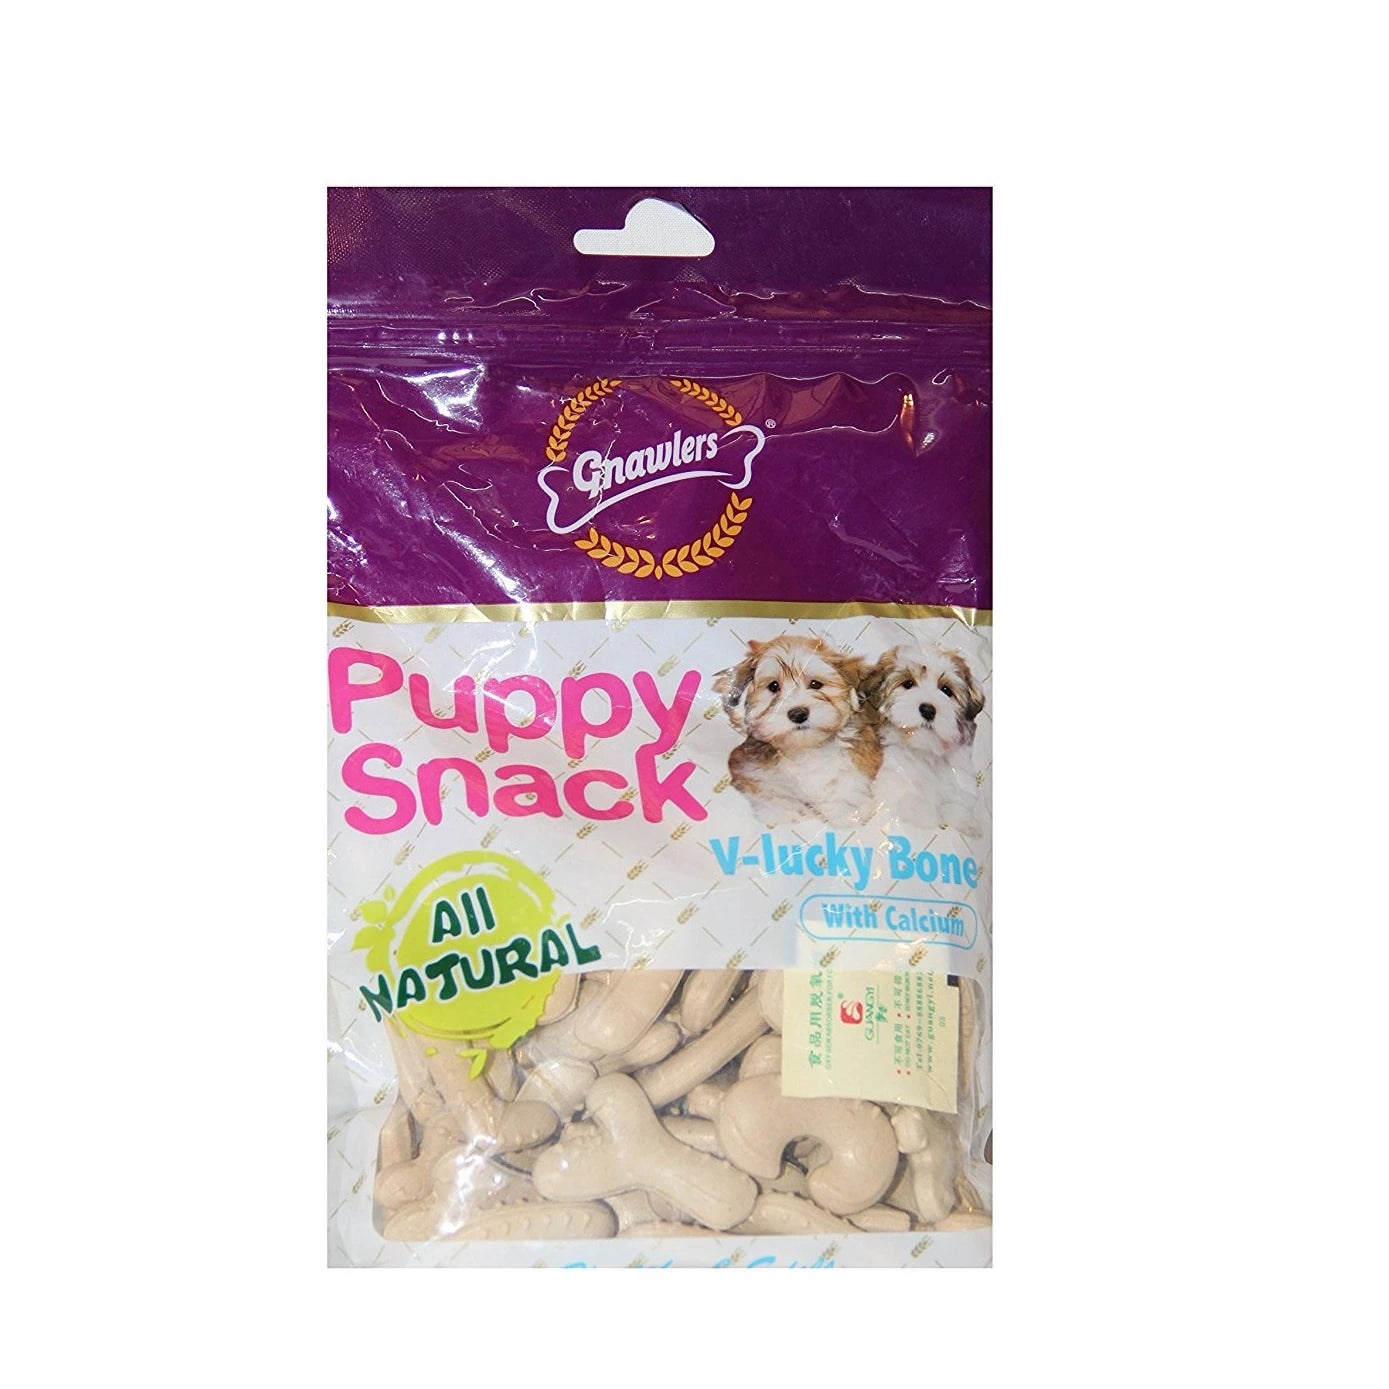 Gnawlers Calcium V-Lucky Bone Puppy Treat, 30 Pcs-270g - pet-club-india